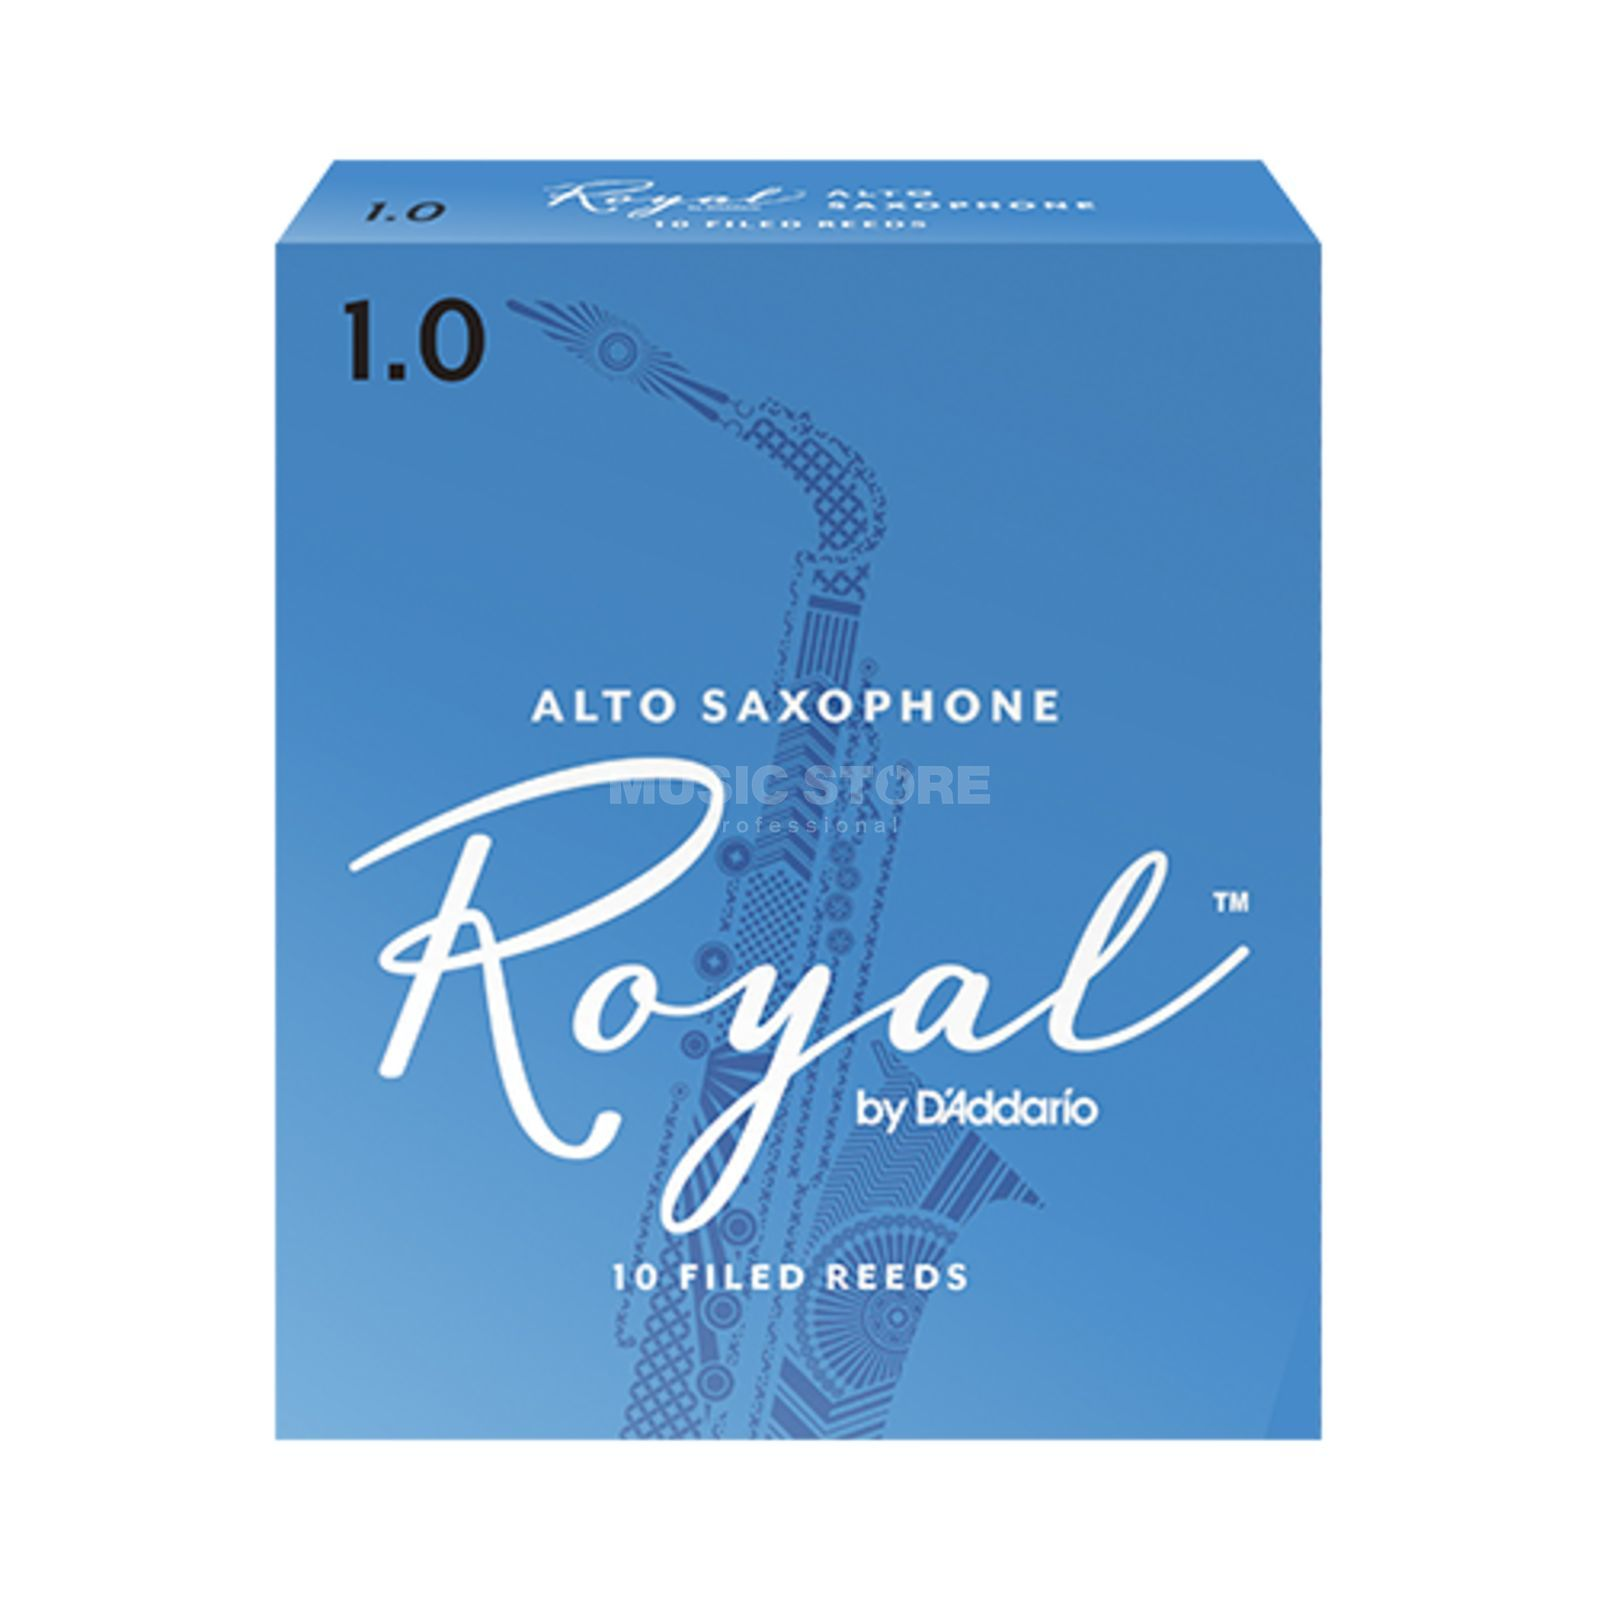 D'Addario Woodwinds ROYAL 1,0 Altsax Produktbild